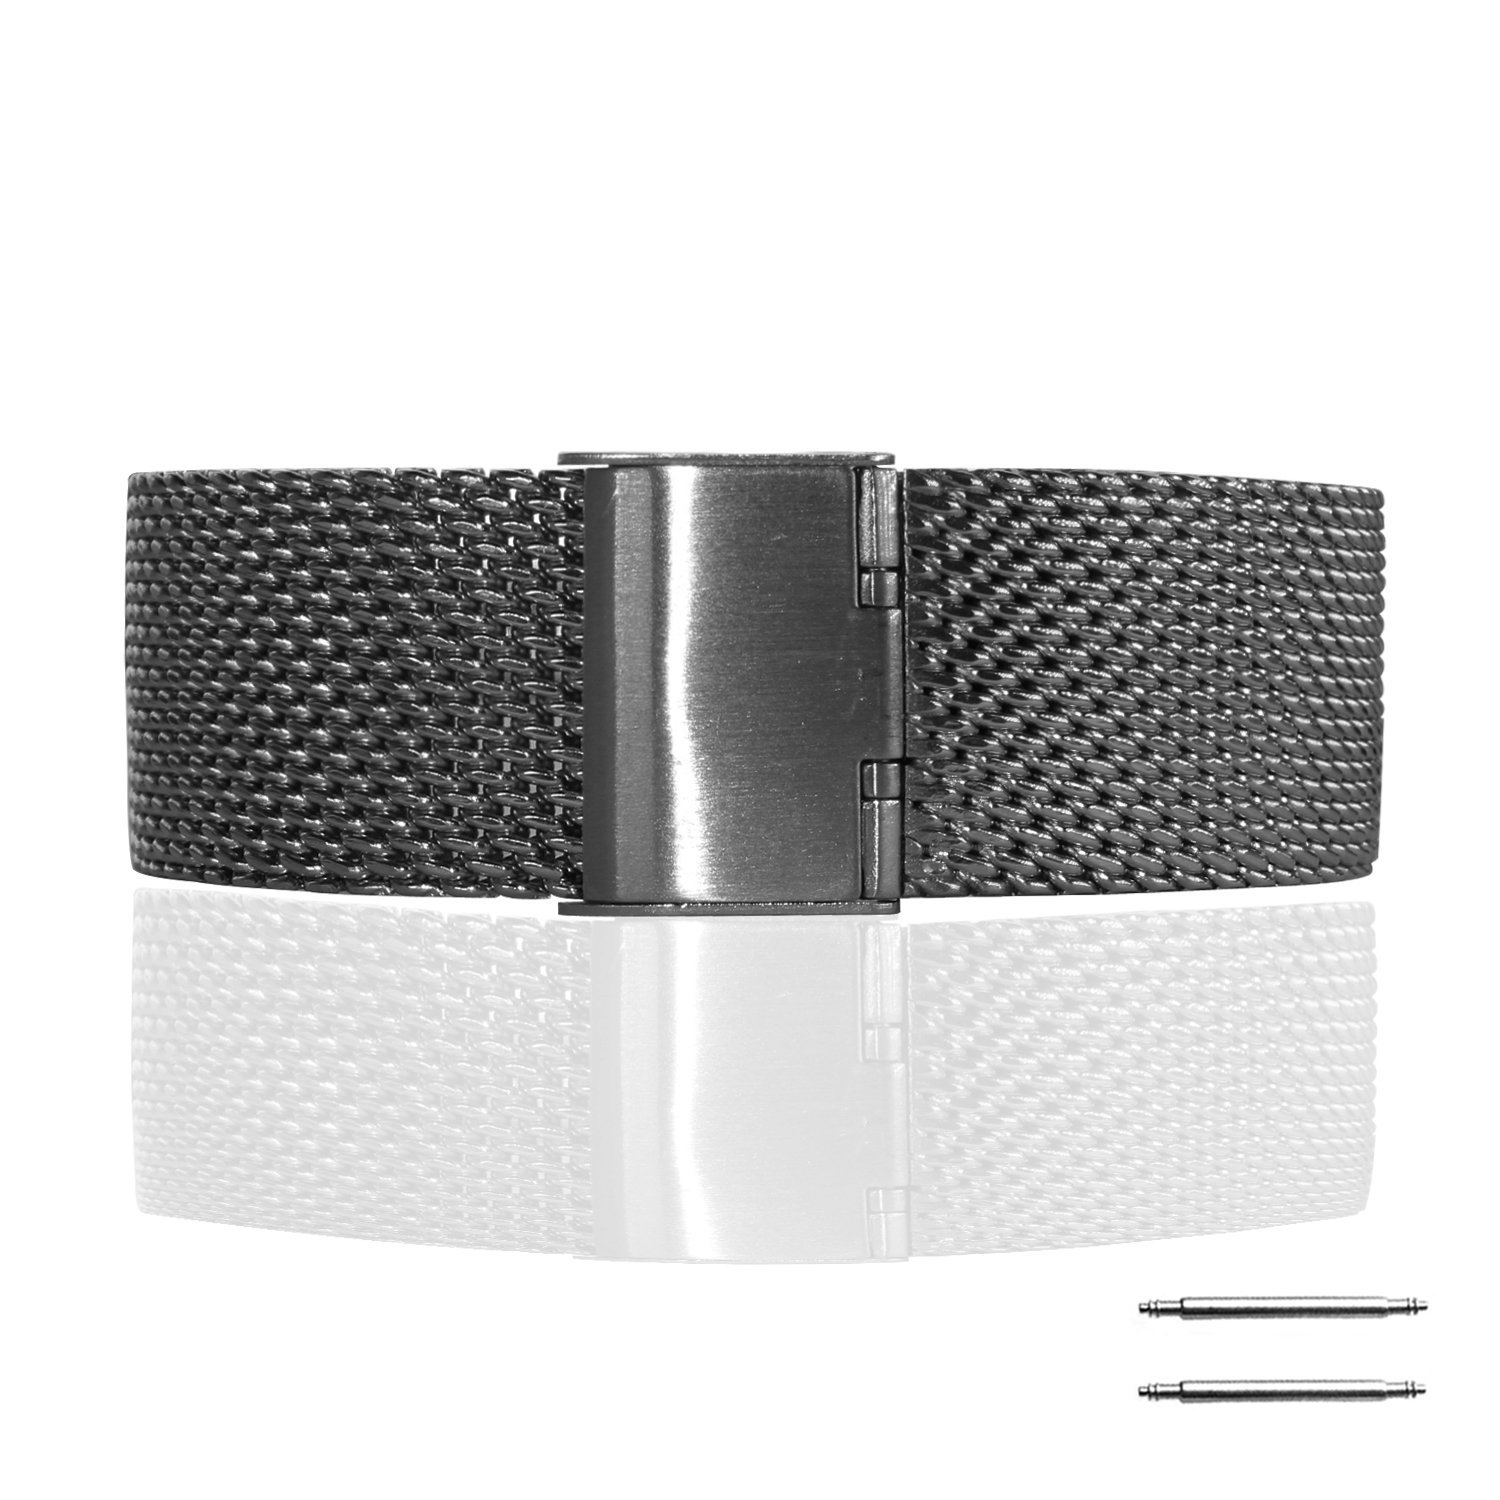 Fitian New Replacement Stainless Steel Wire Mesh Steel Fold Over Buckle Watch Band Strap for Moto 360 Smart Watch Motorola Wristband with Free a Screen Protector for Moto 360 and a Spring Bar Tool (Matte Black & Thick Mesh) ¡­